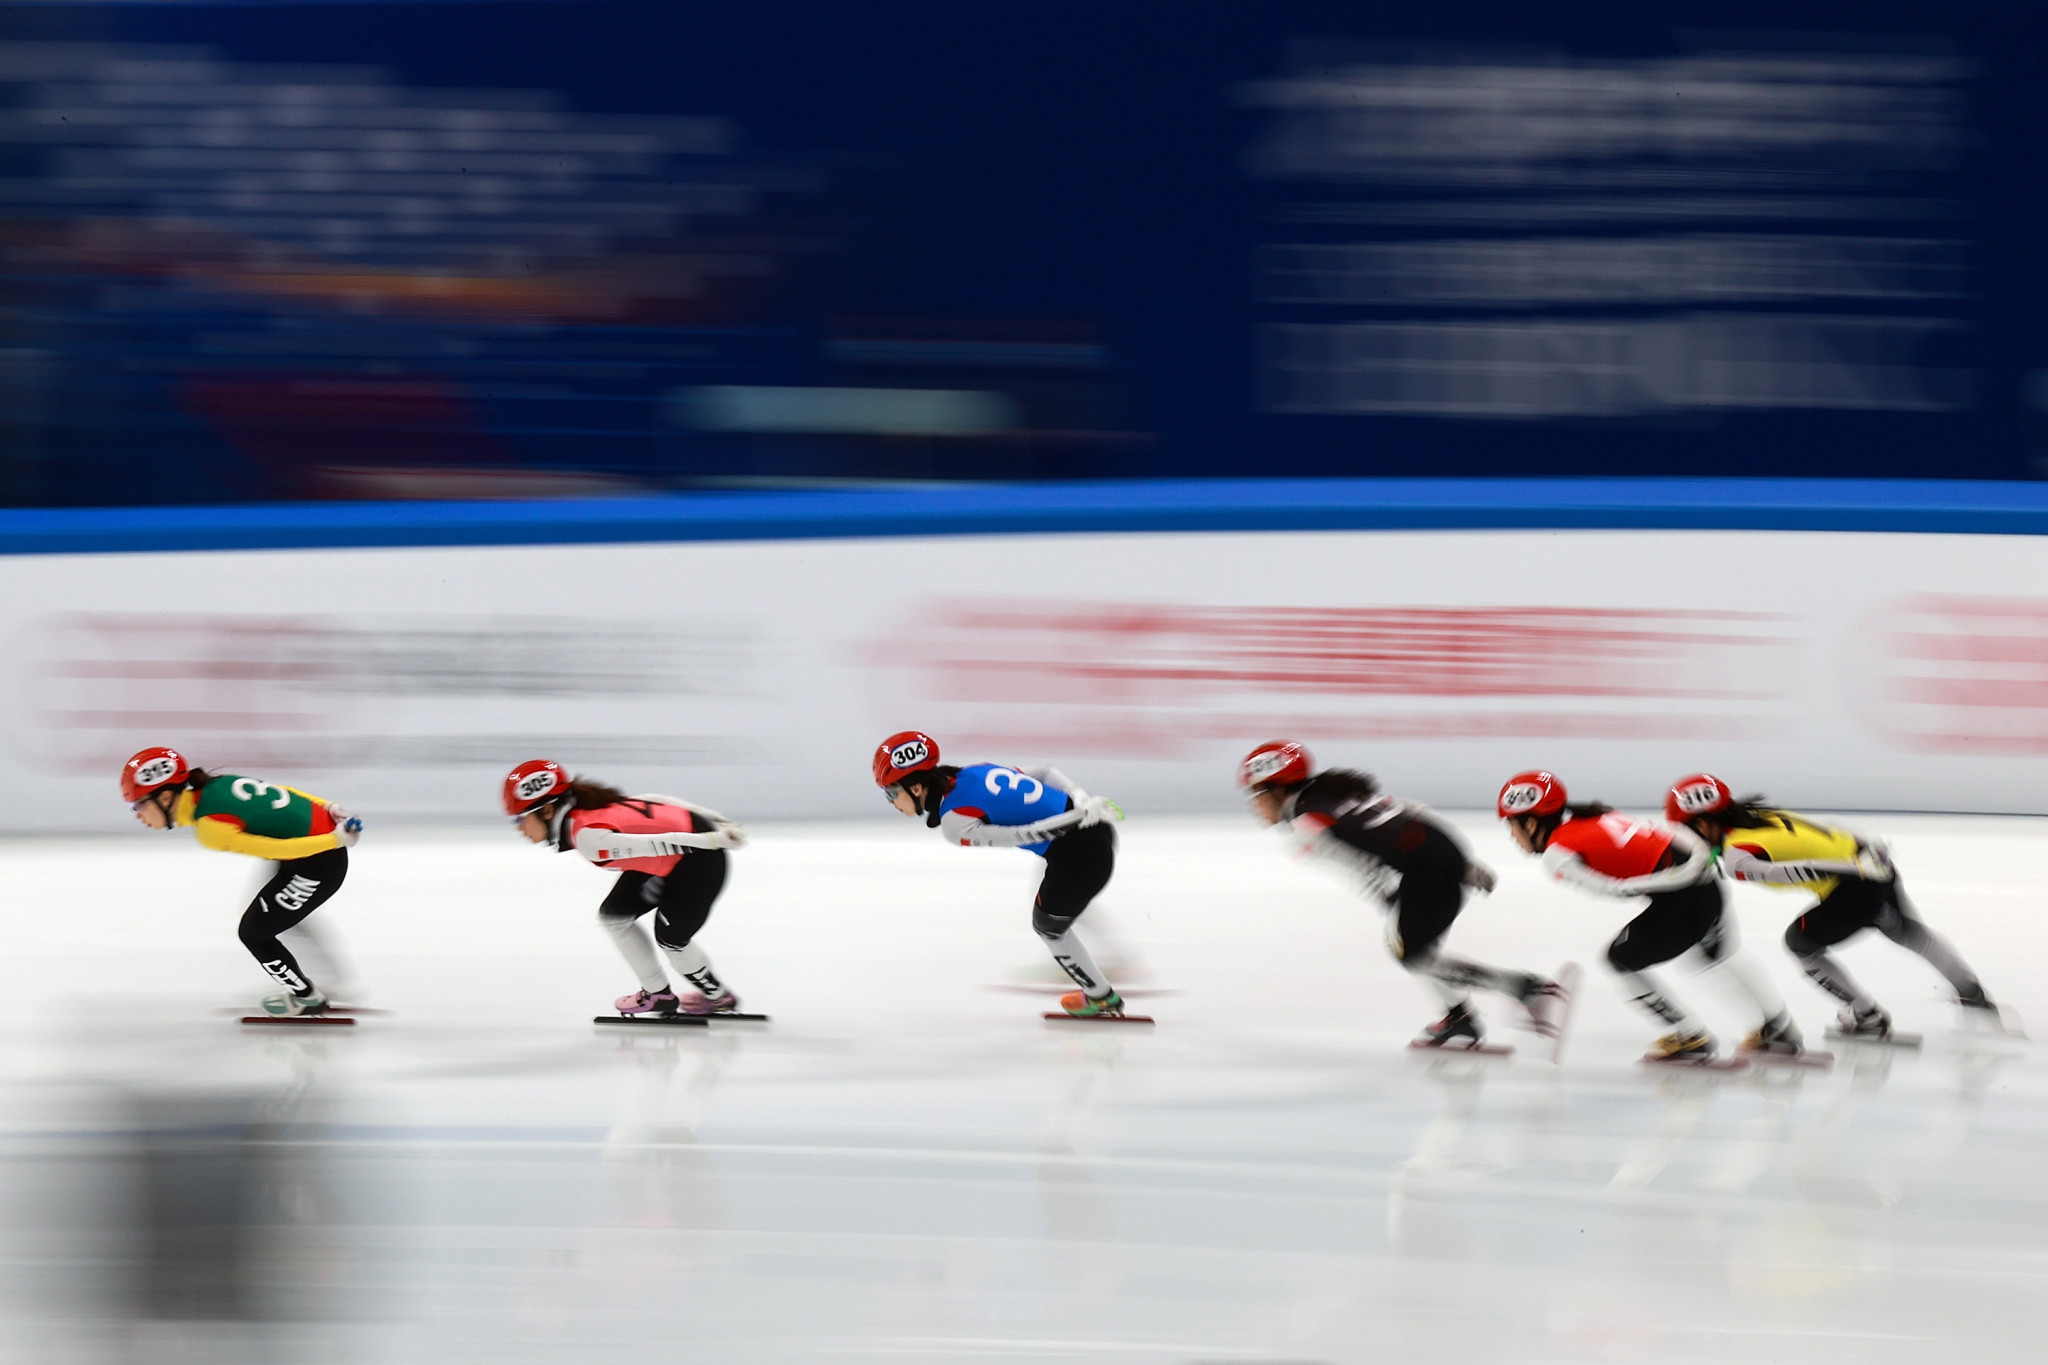 The ISU approved amendments across short track and speed skating disciplines ©Getty Images